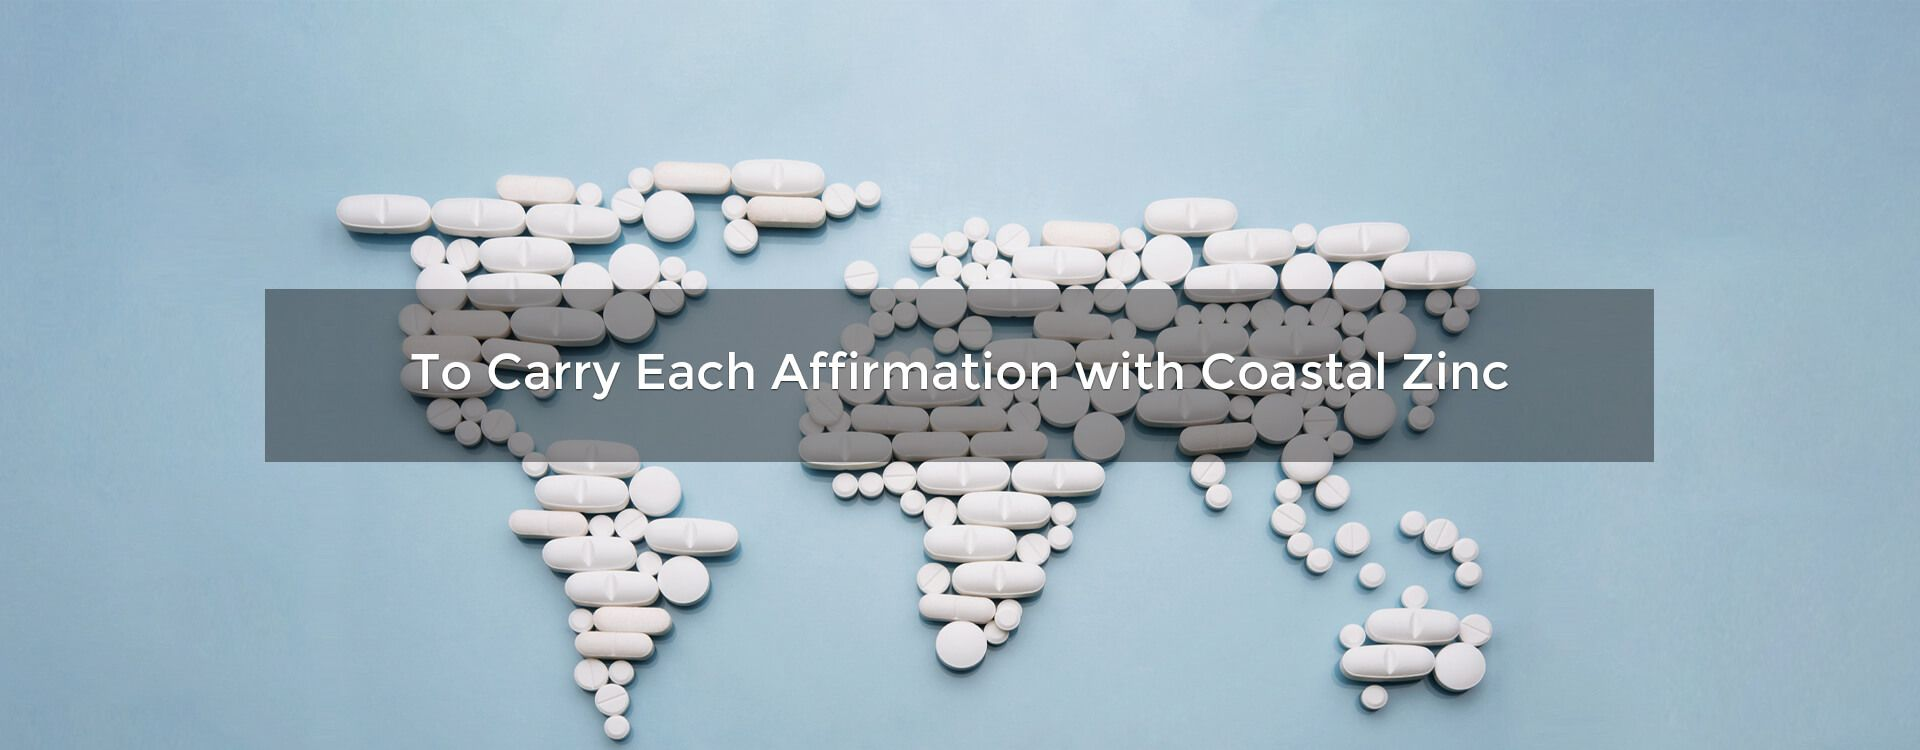 To Carry Each Affirmation with Coastal Zinc